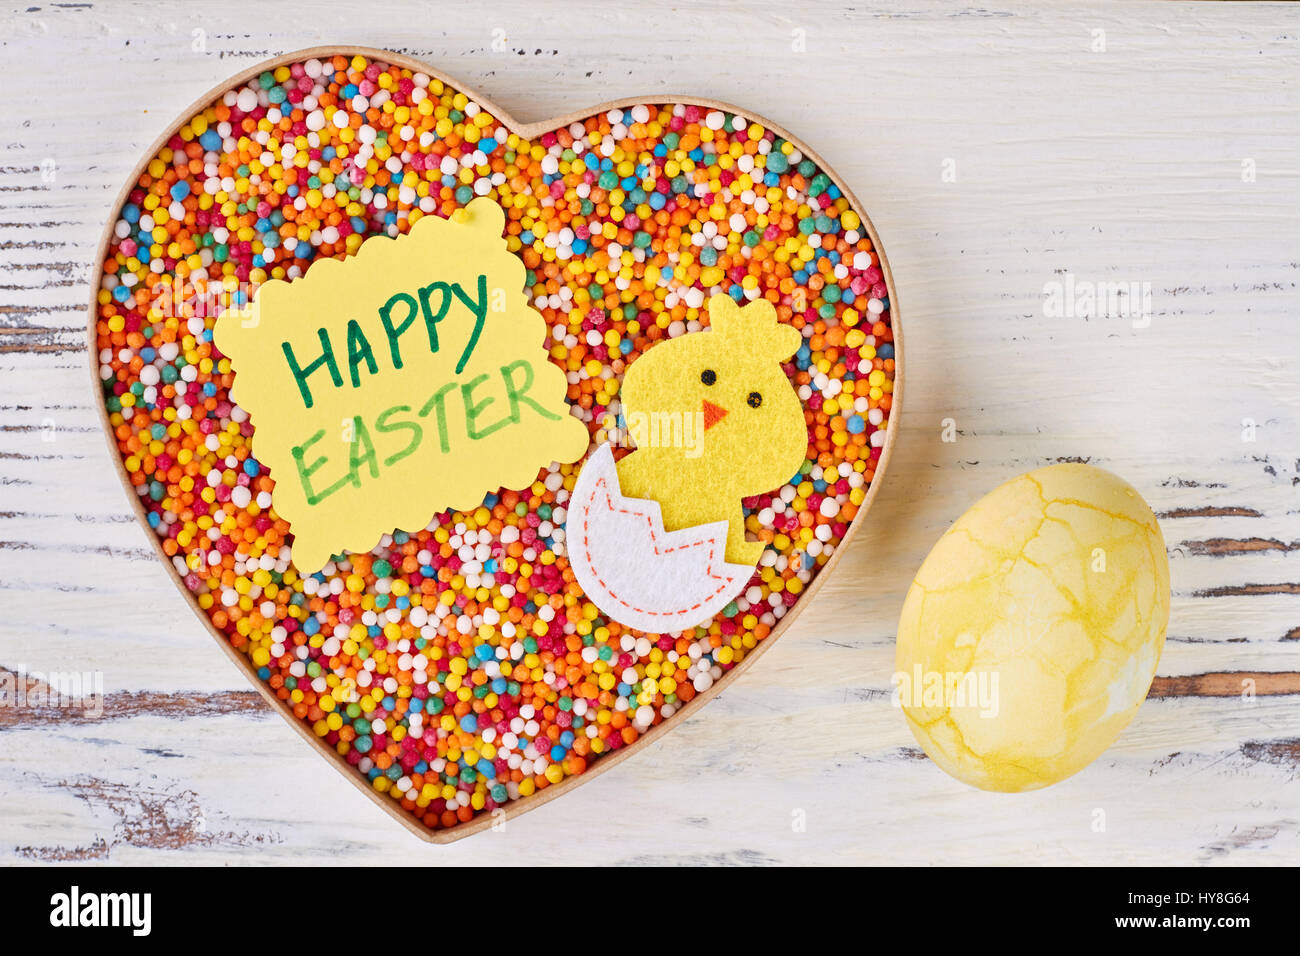 Easter greeting card and sweets dyed egg on white wood cute easter easter greeting card and sweets dyed egg on white wood cute easter gifts for girlfriend negle Image collections